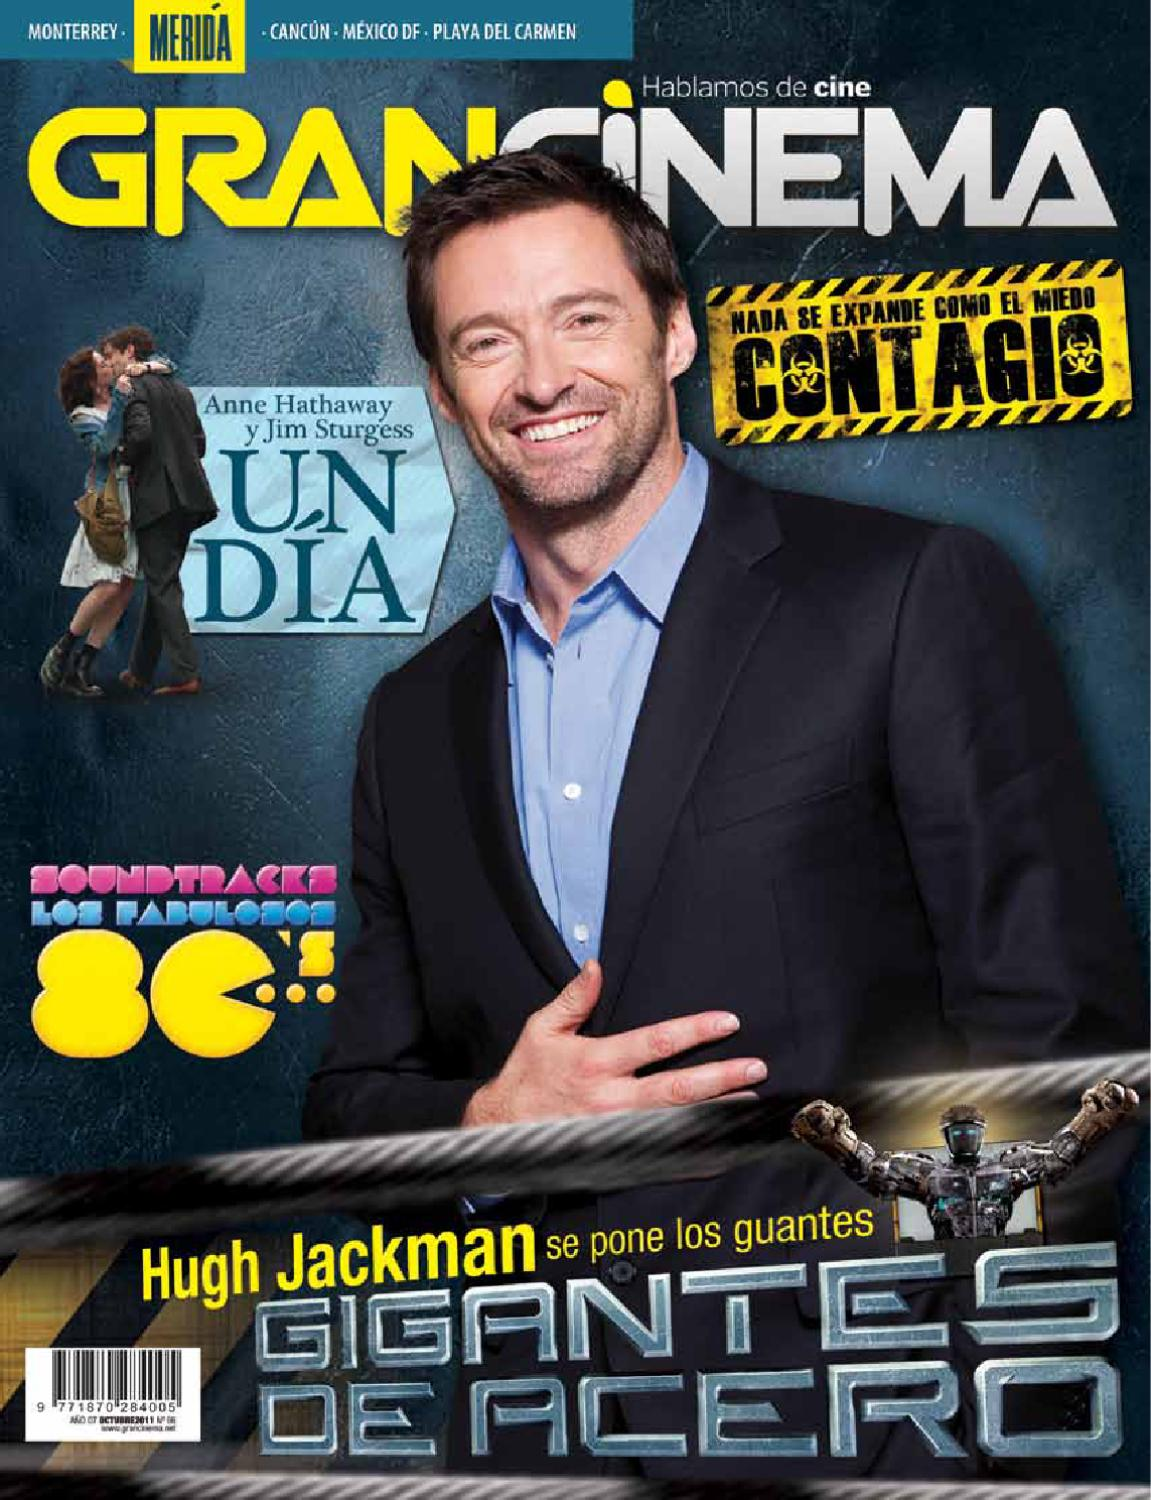 c34062d48 RevistaMIDOct11 by GranCinema - issuu